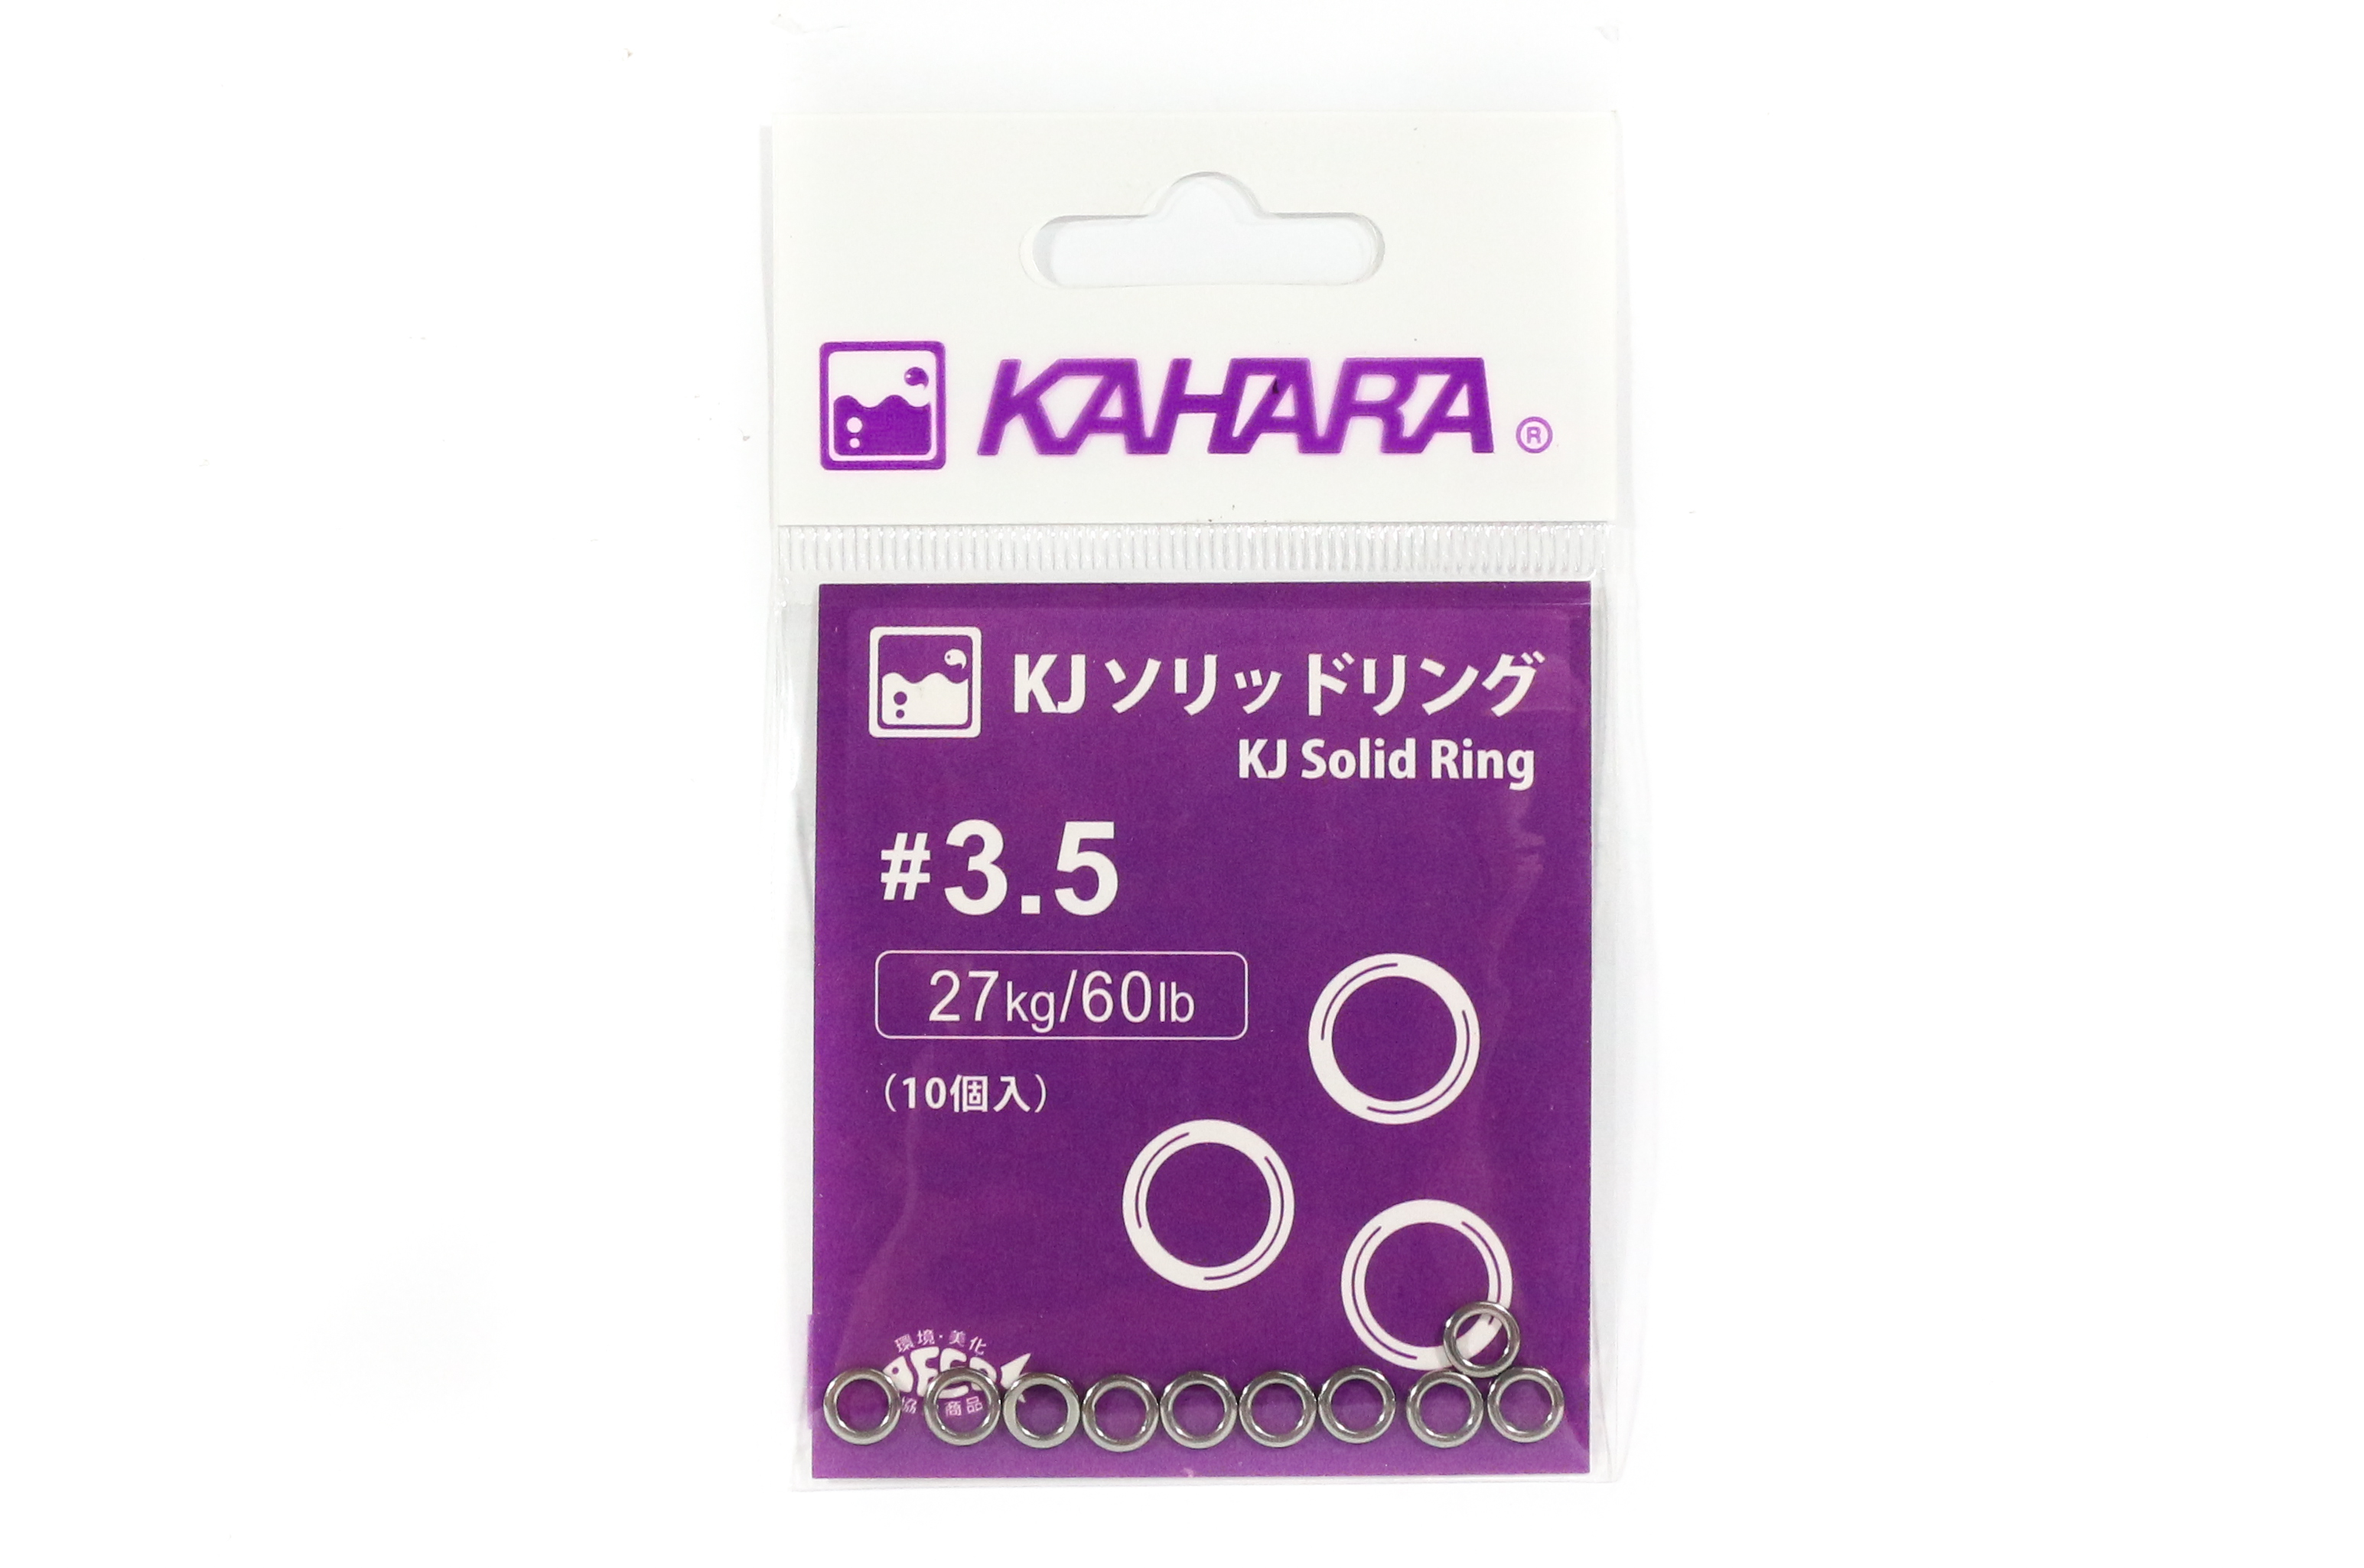 Kahara Solid Ring Stainless Steel Size 3.5 - 60lb (5688)